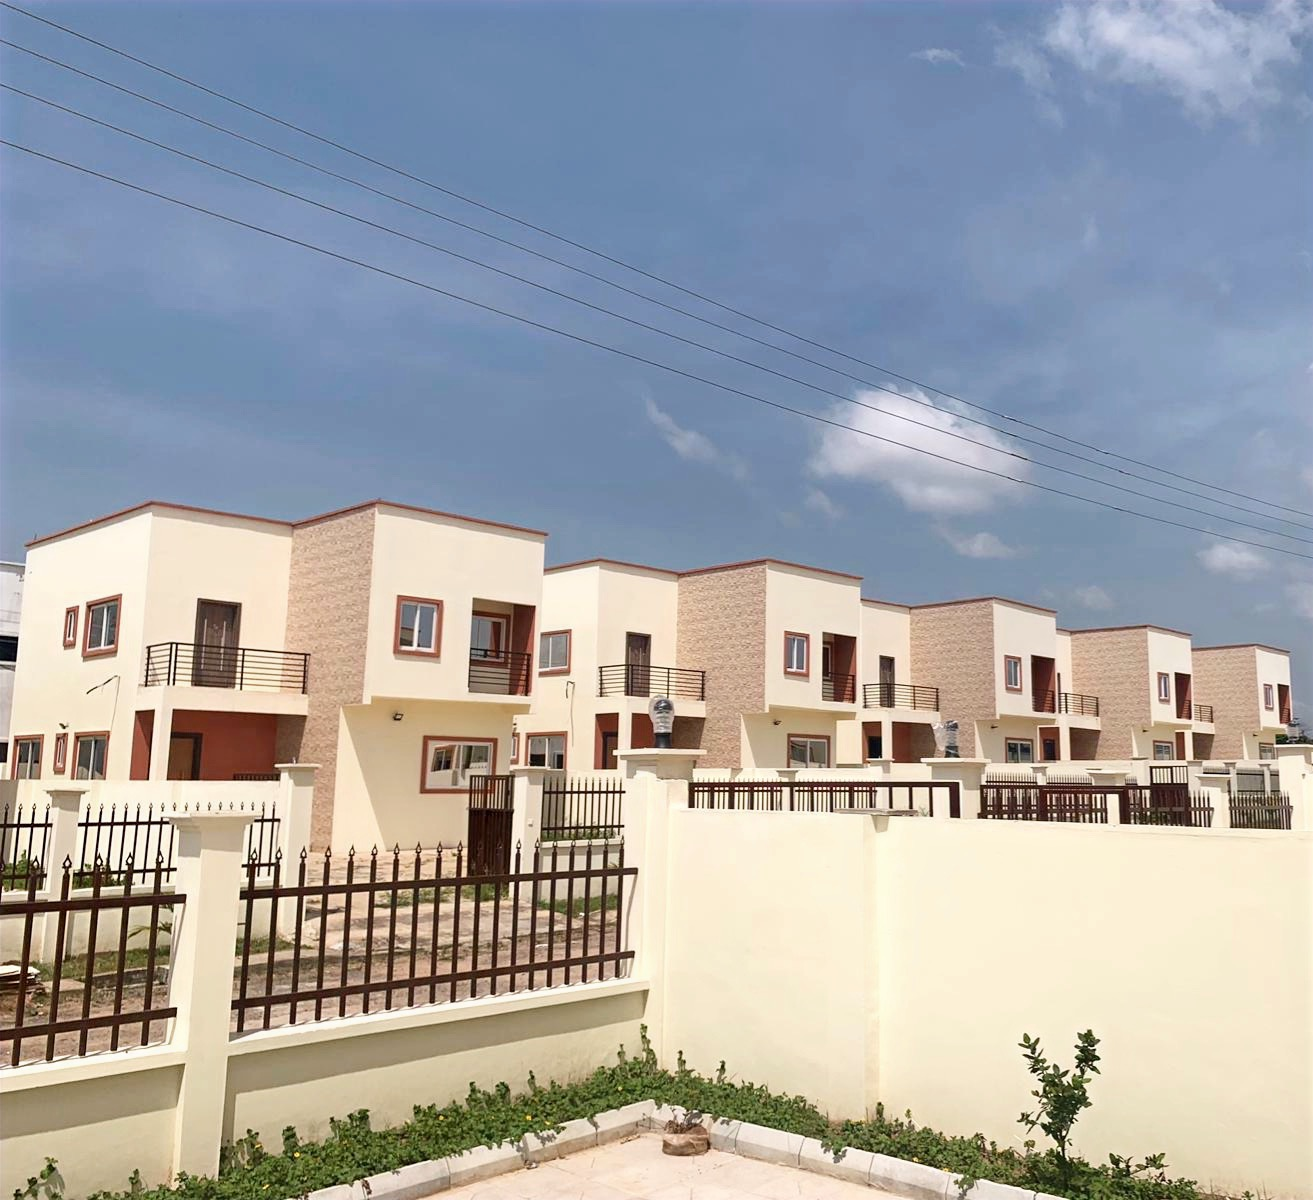 3 bedroom Detached houses